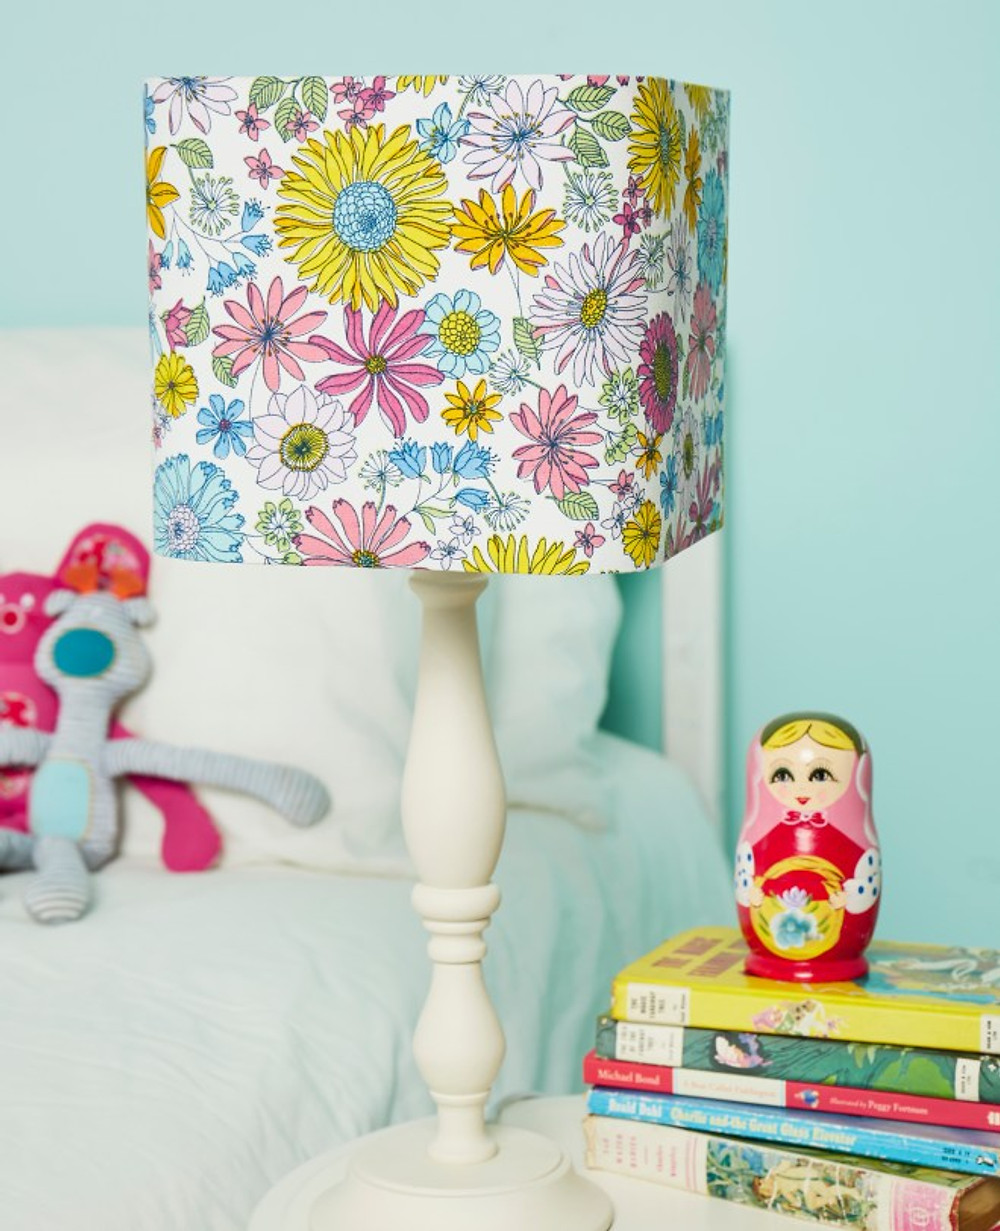 Needcraft DIY lampshade kit, the rounded square lampshade kit with floral fabric in a kid's bedroom setting